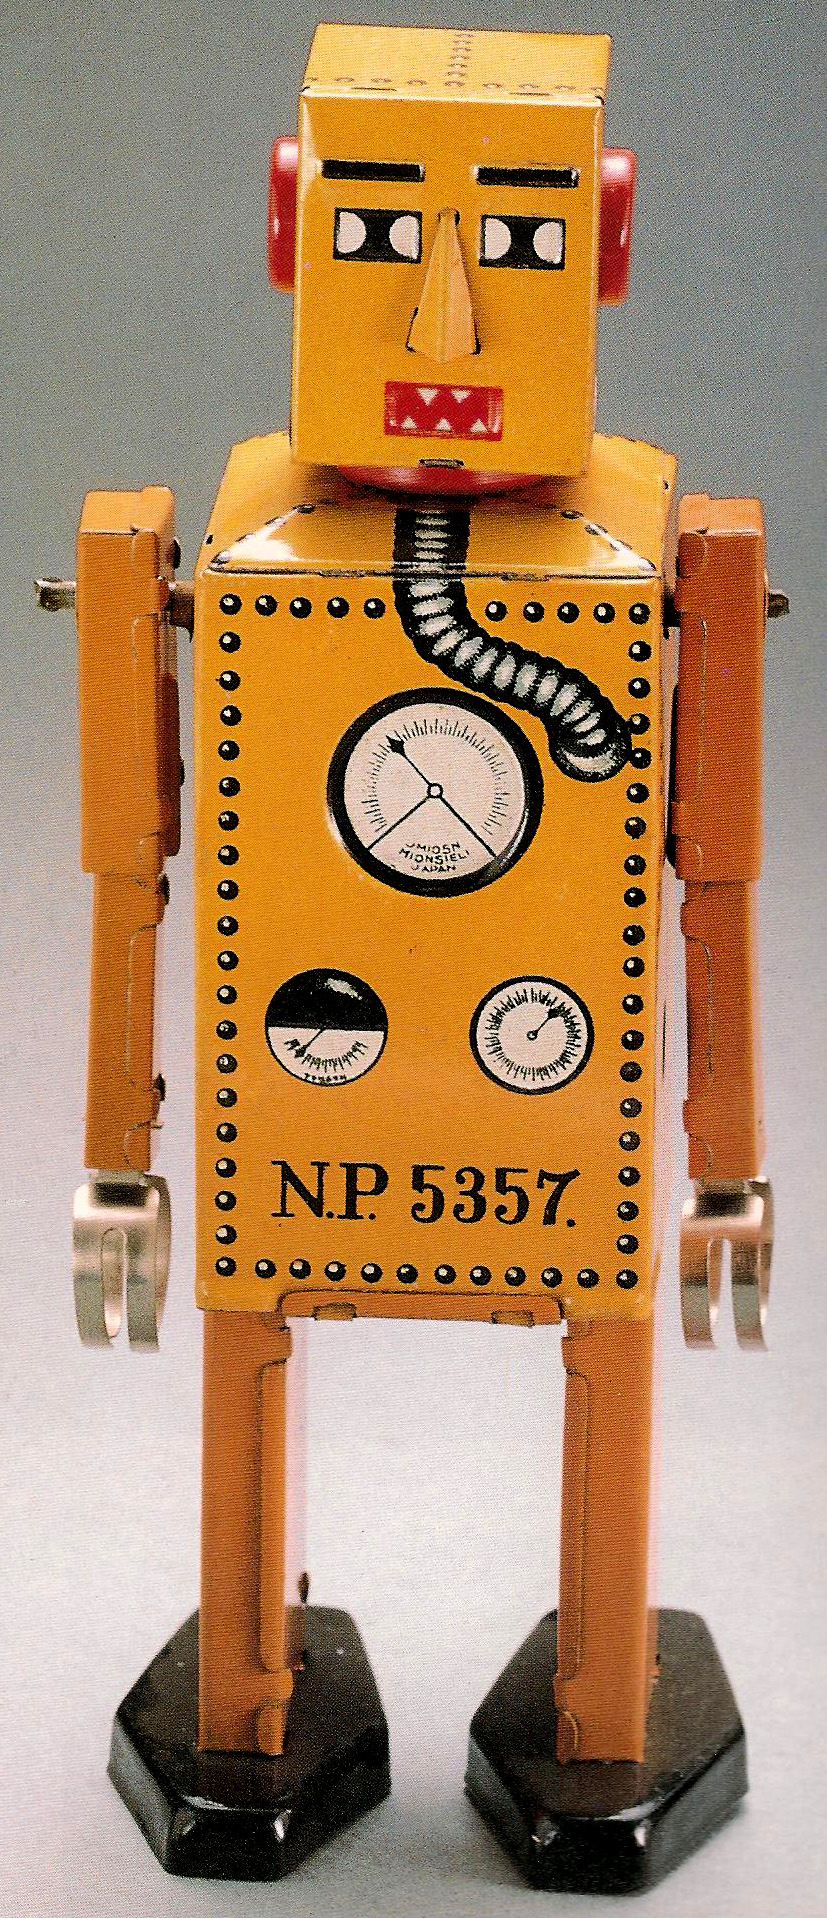 Lilliput was the first tin toy robot made in Japan.